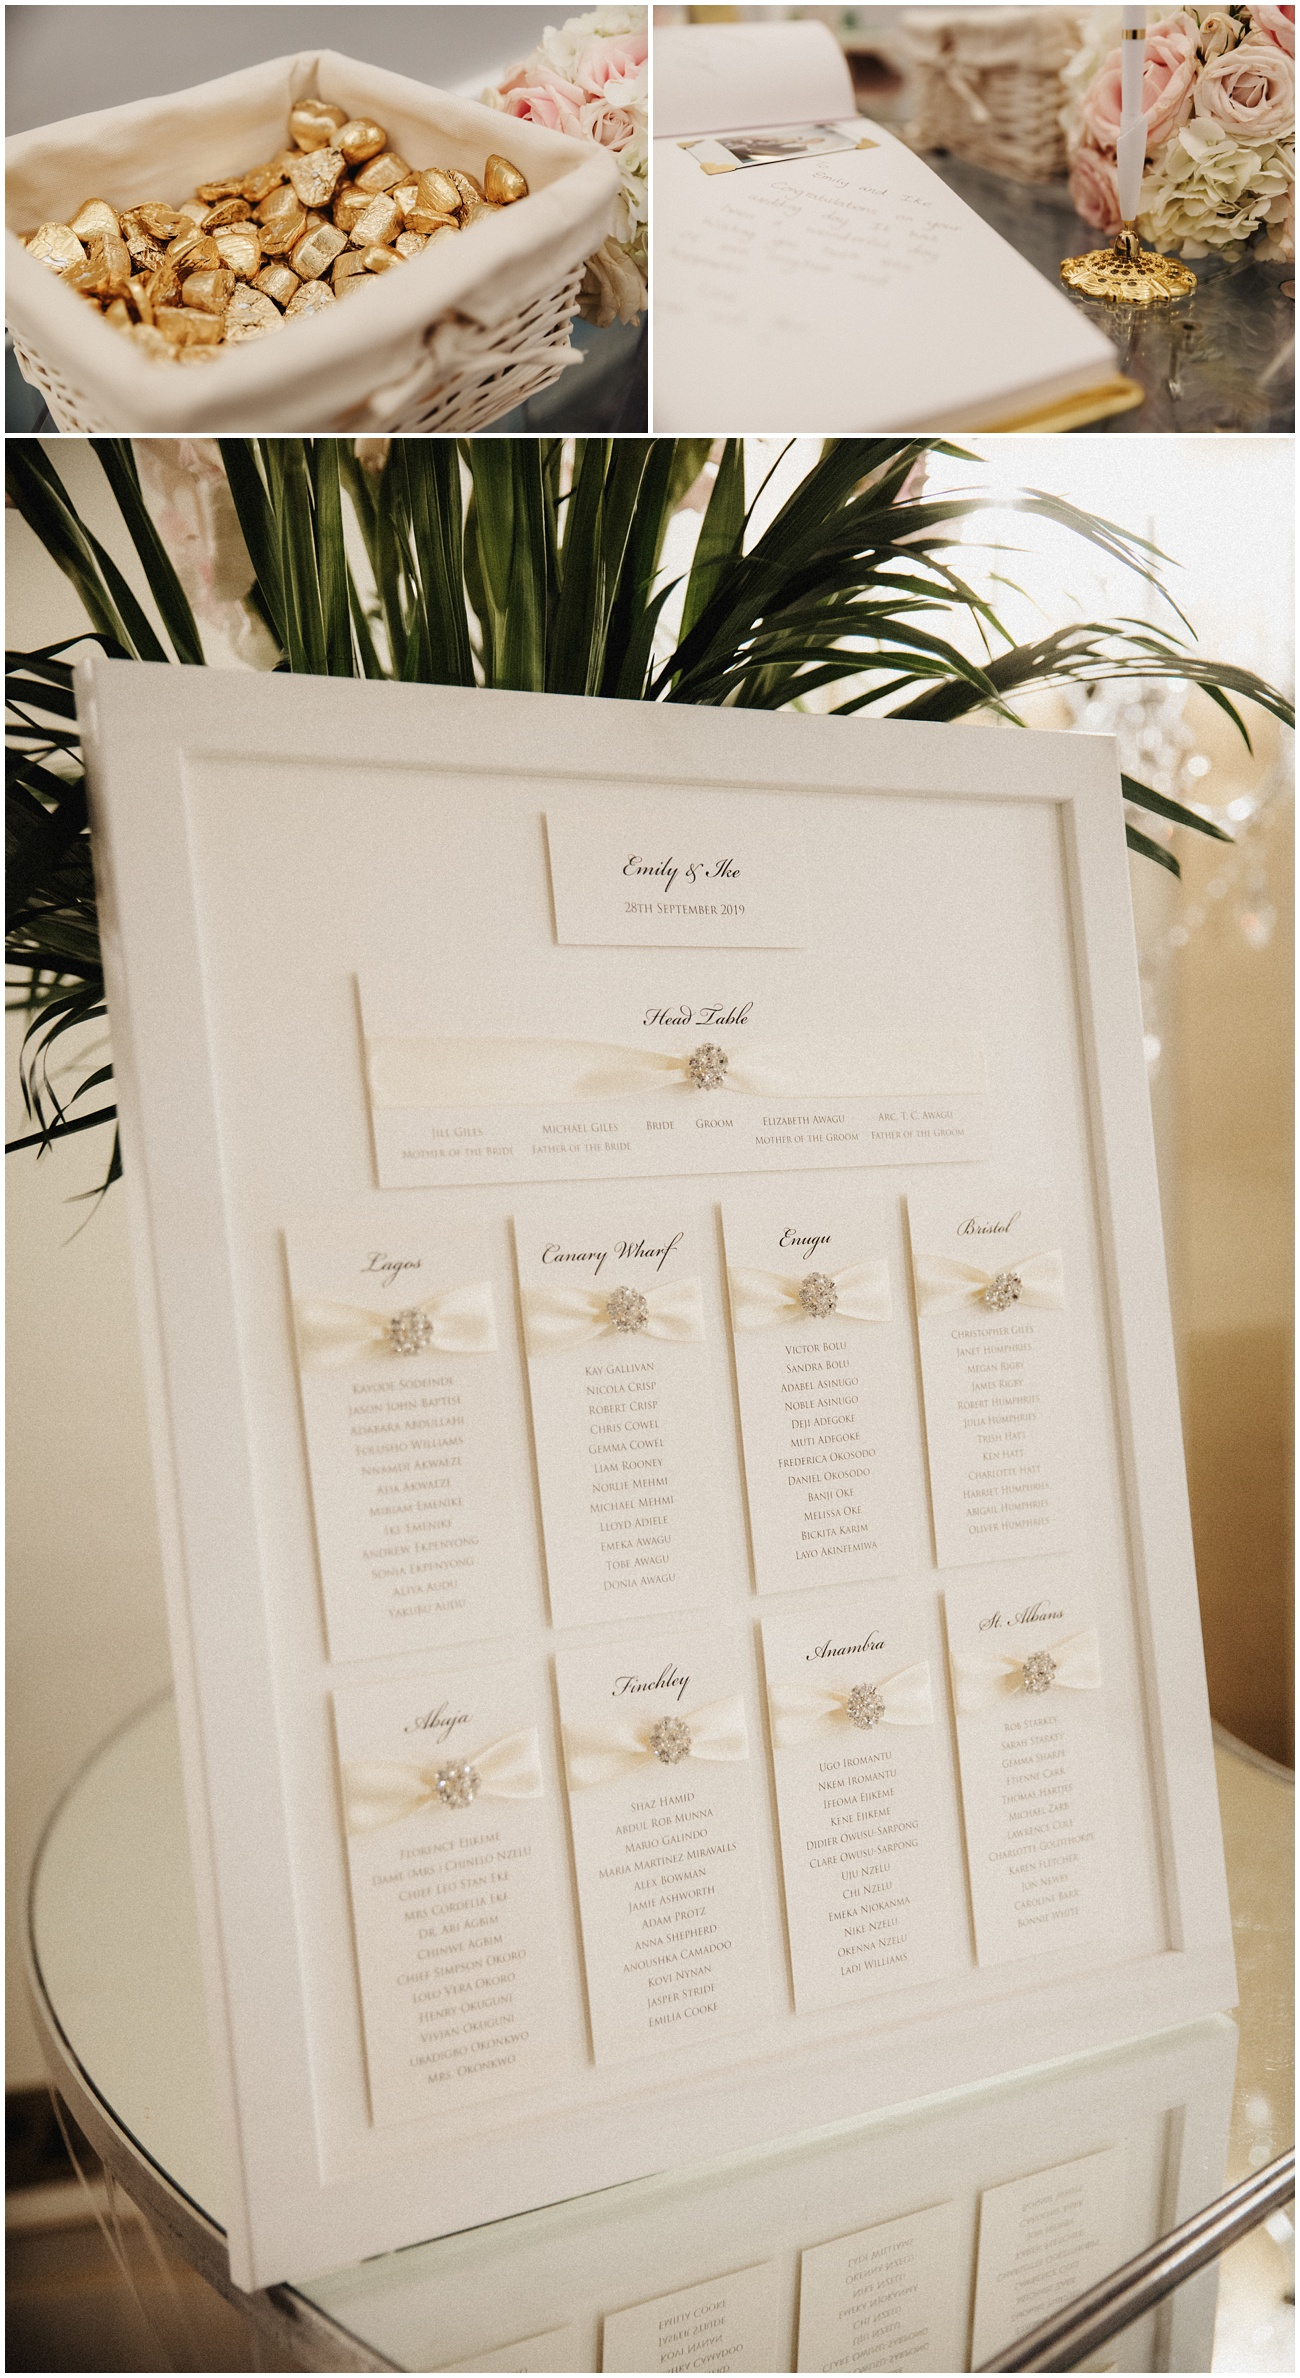 Wedding details including the guest book, chocolates and seating plan